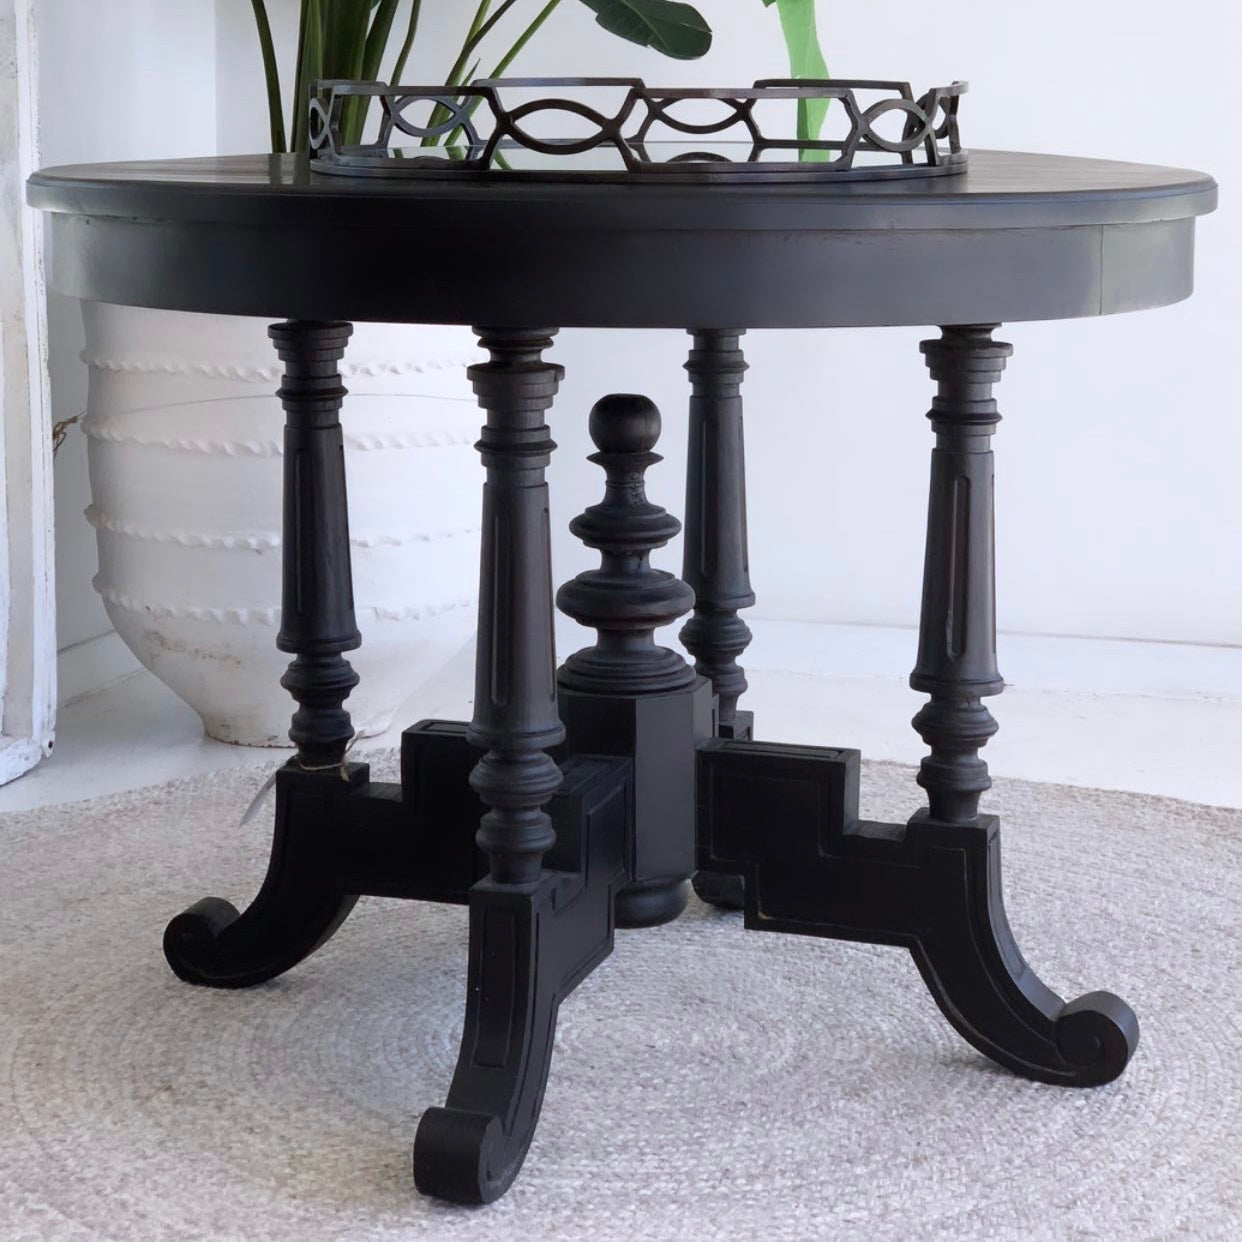 Round Black Ornate Entrance Table 76x100